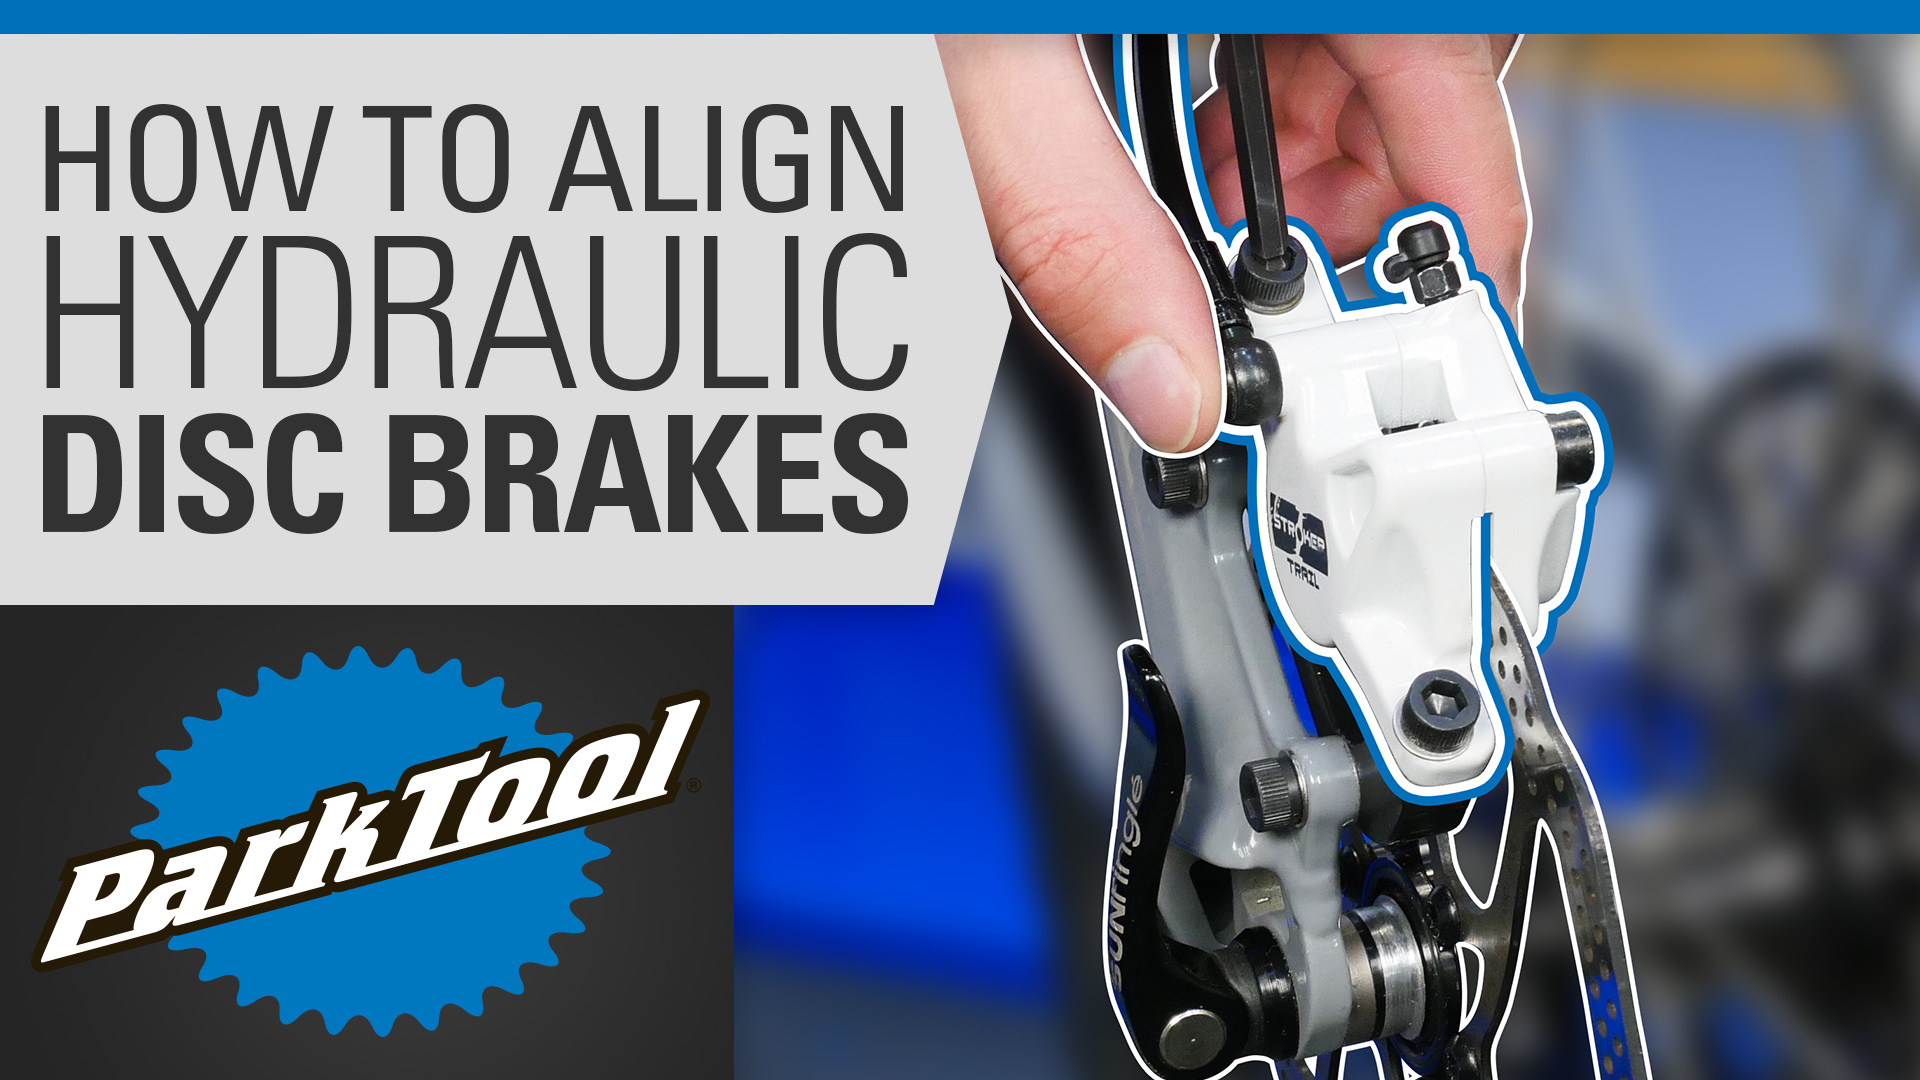 Video thumbnail for how to align hydraulic disc brakes